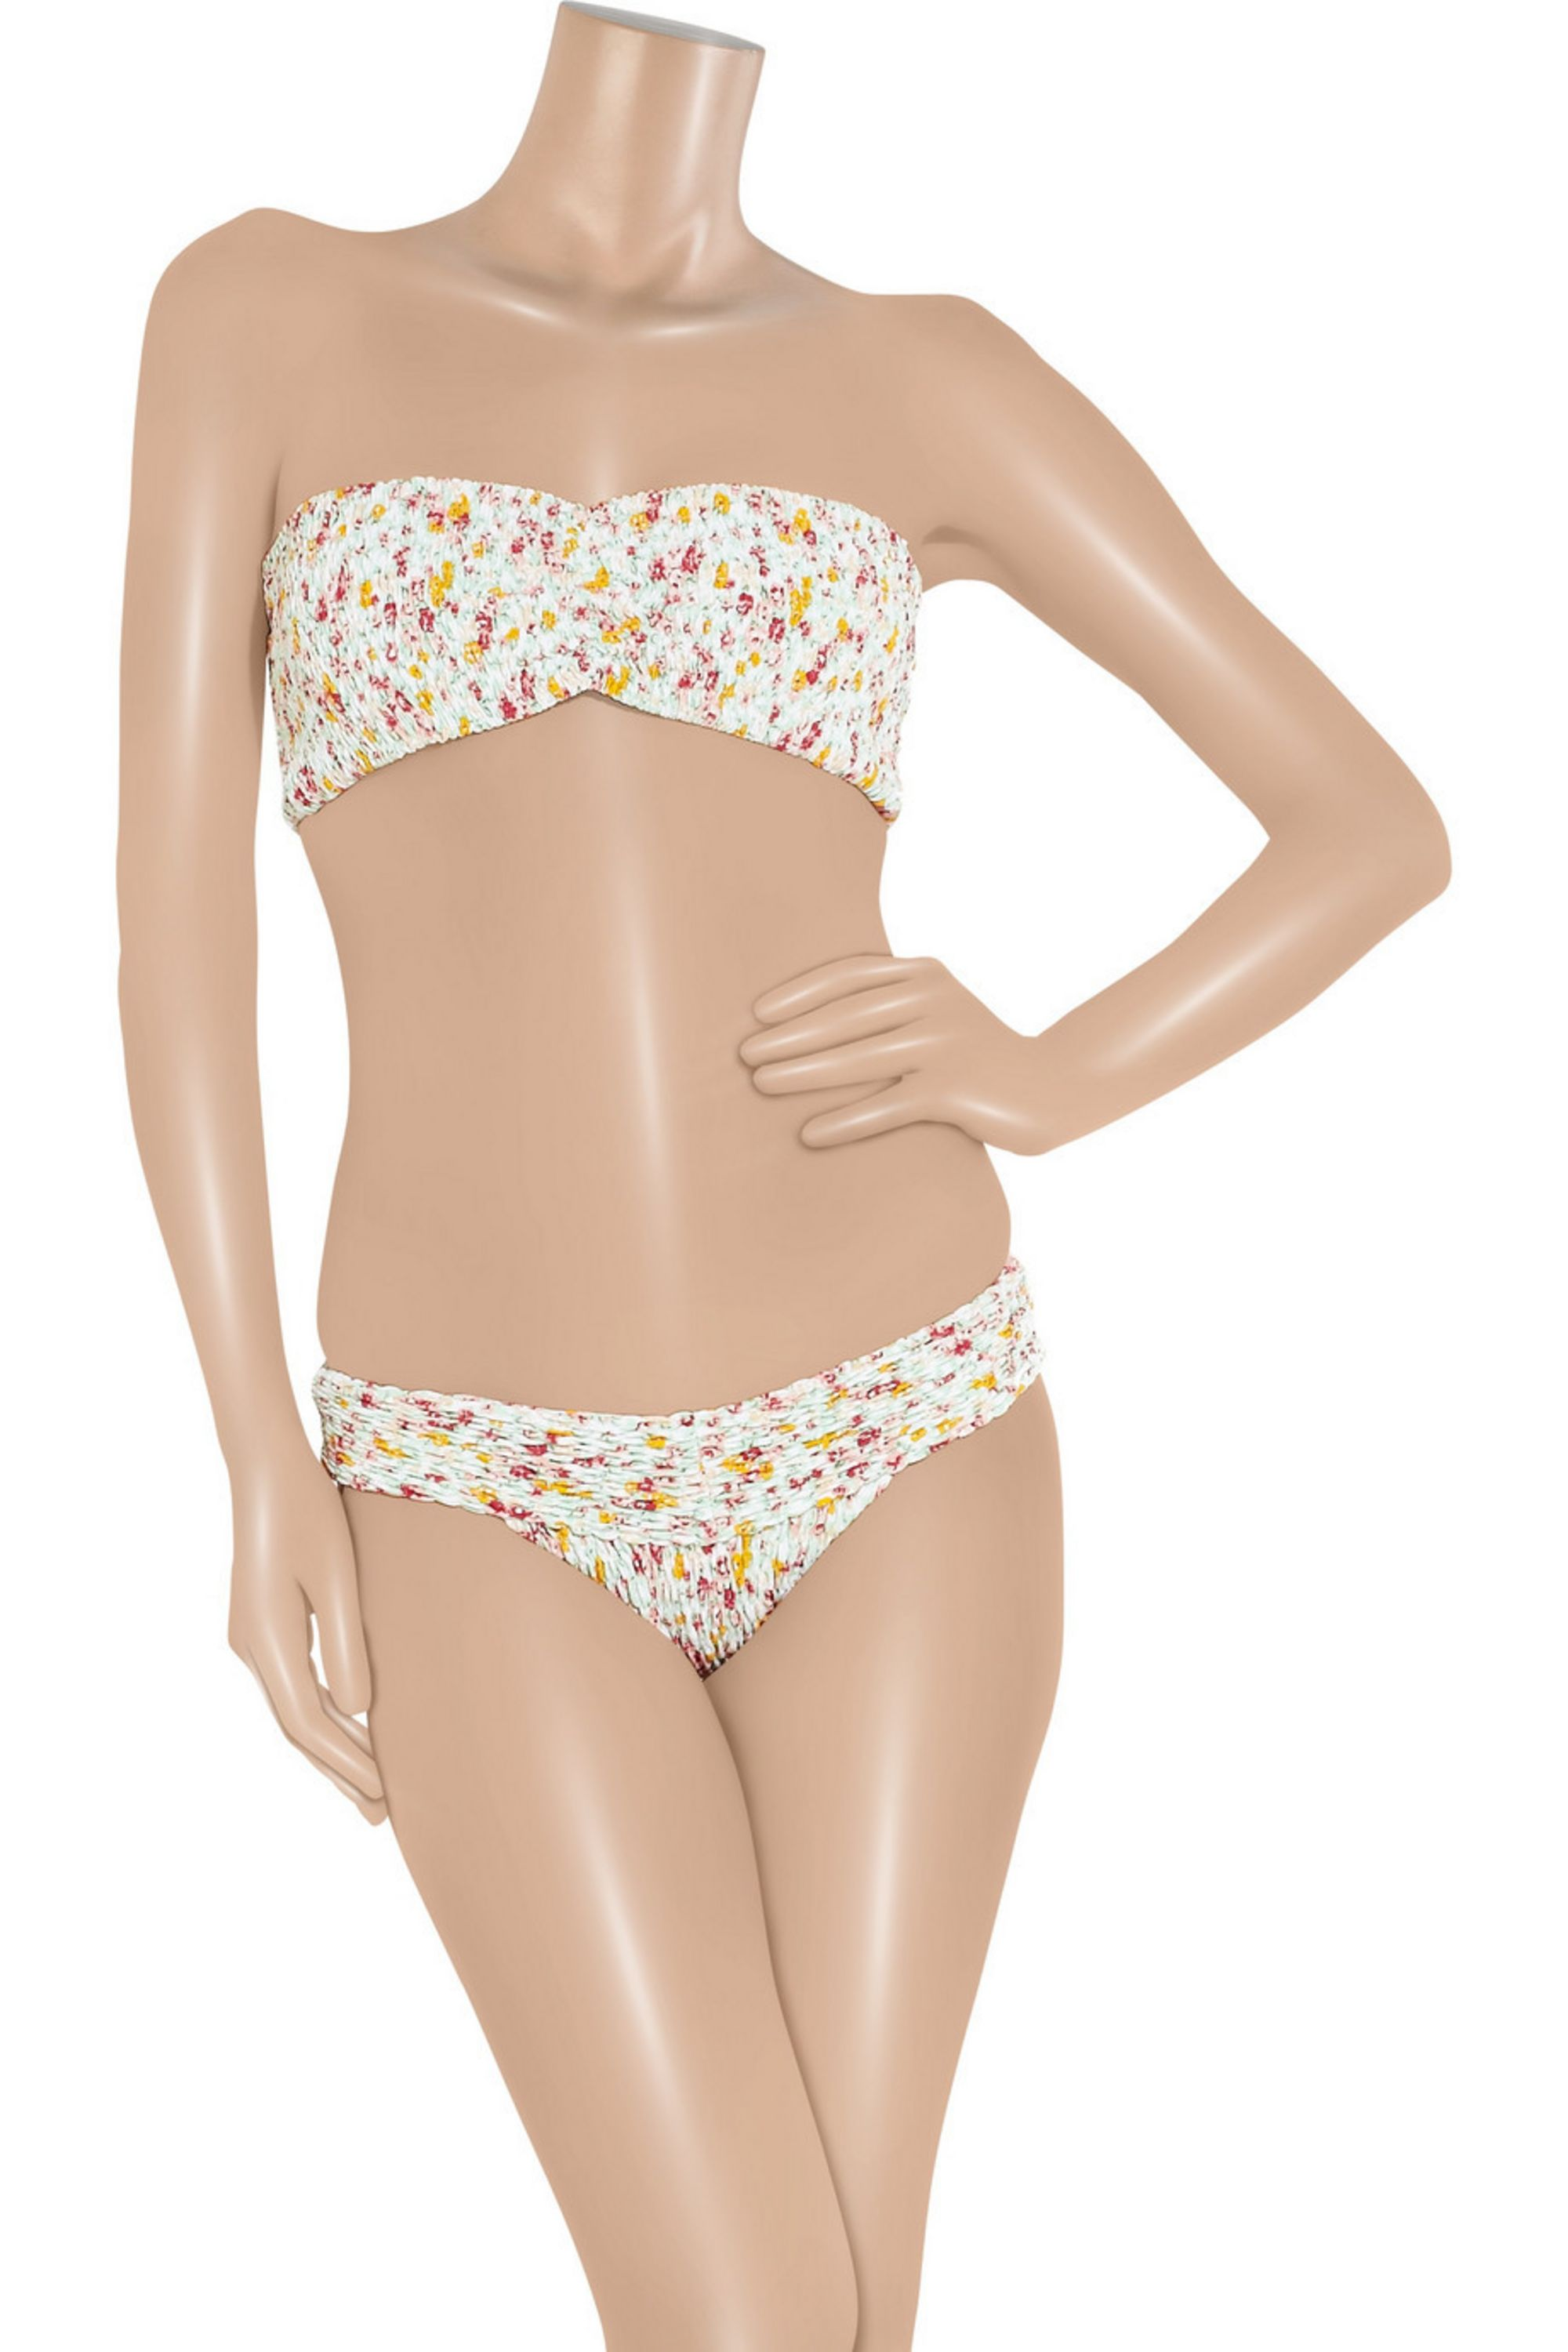 Tori Praver Betty printed smocked bandeau bikini top